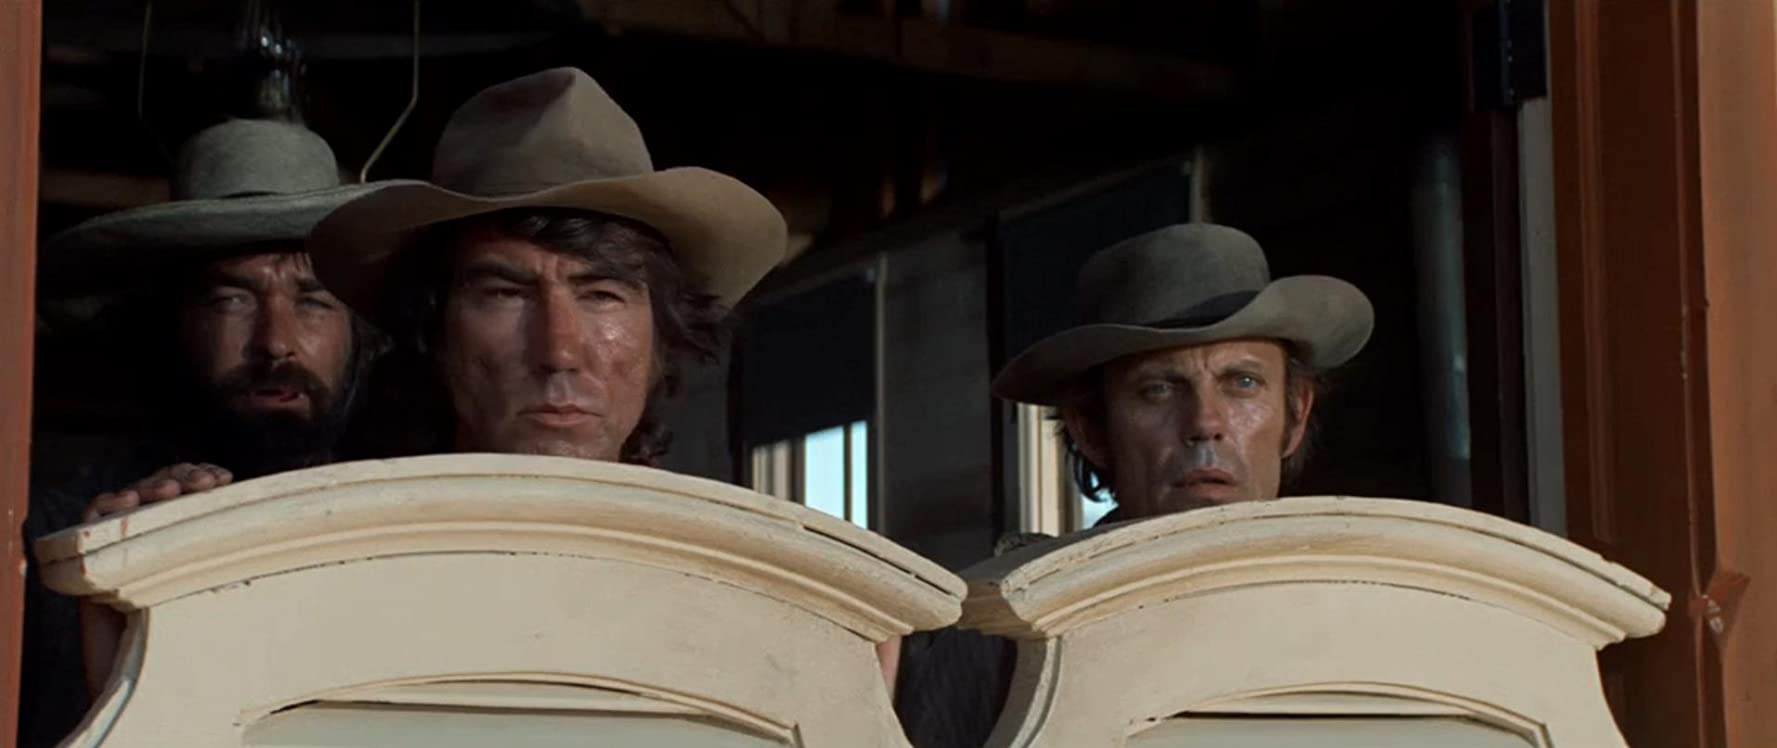 Jim Gosa, Russ McCubbin, and Scott Walker in High Plains Drifter (1973)